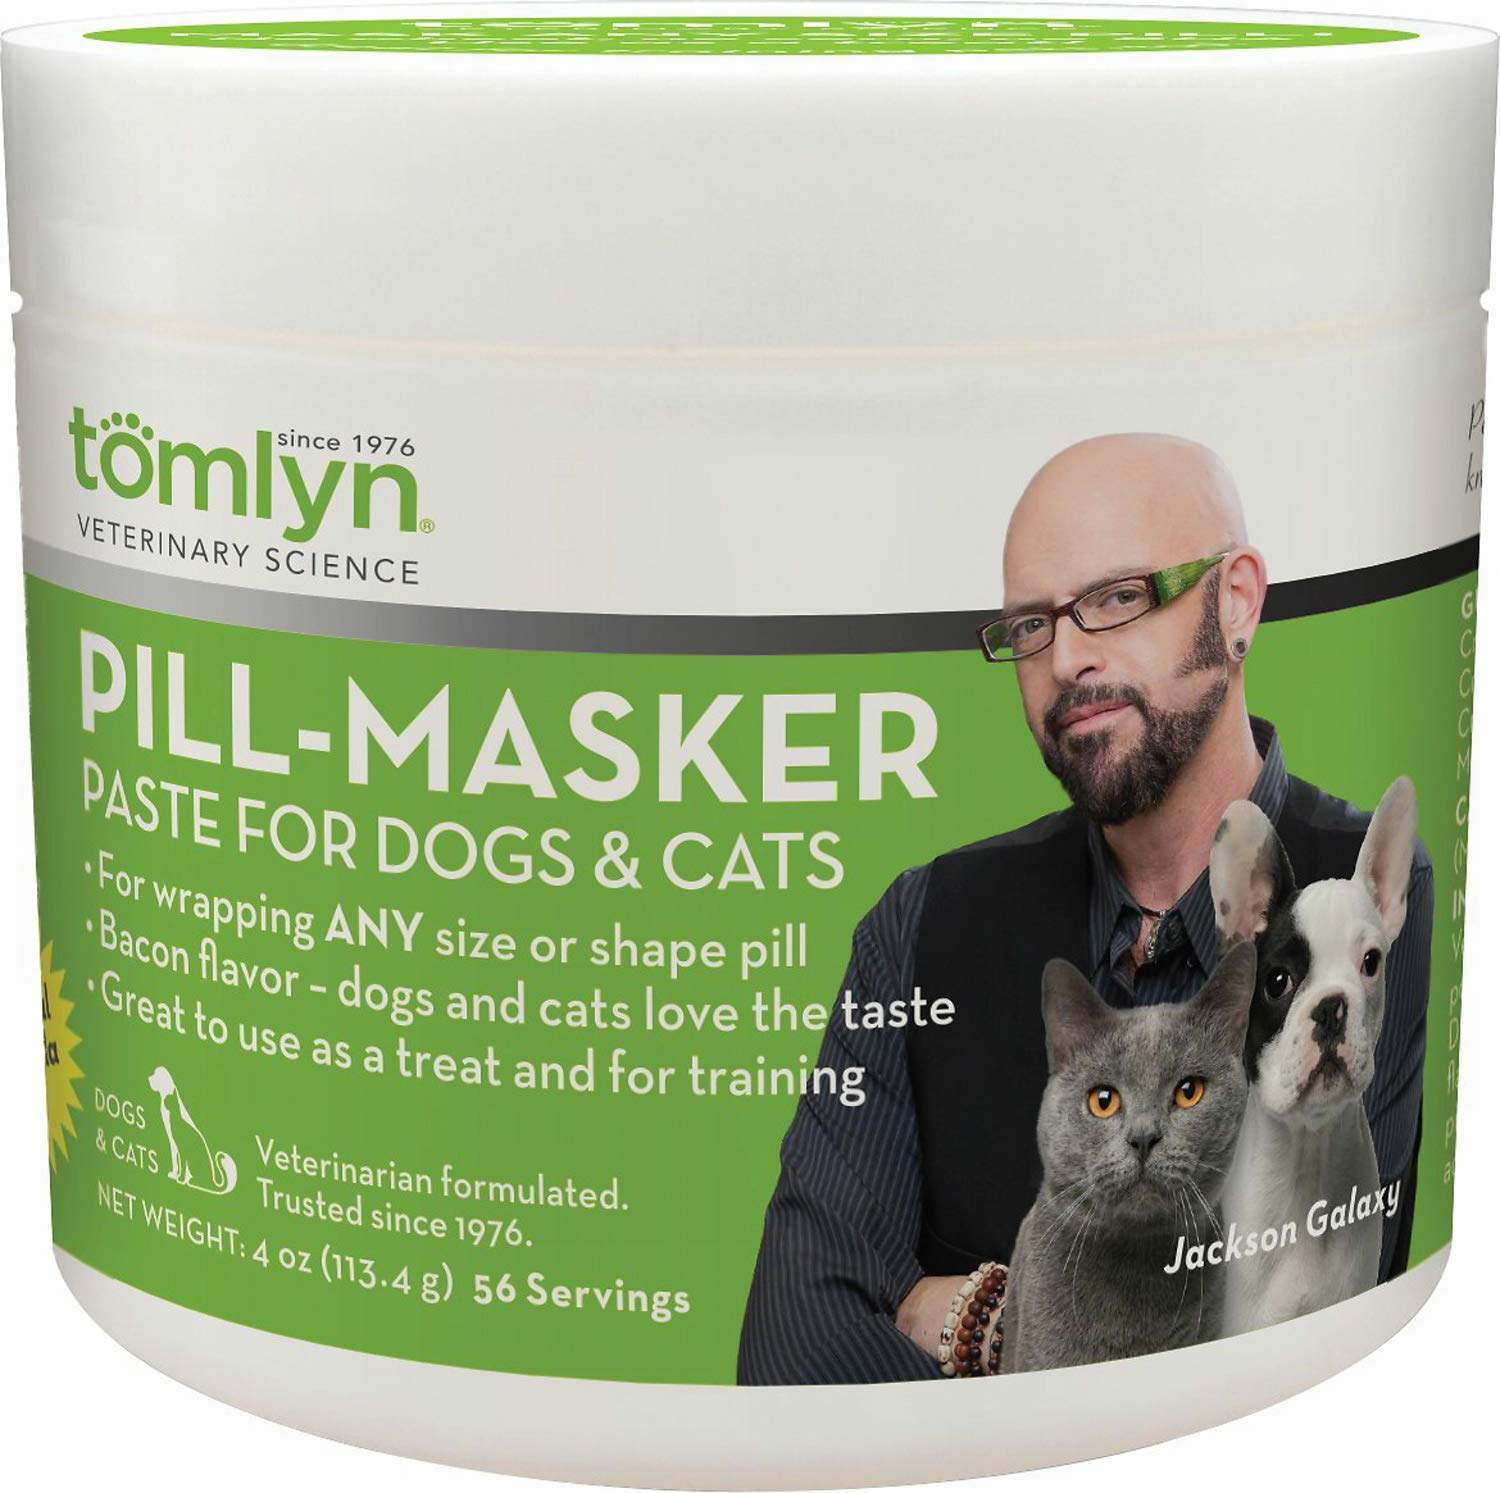 TOMLYN Pill-Masker Paste for Dogs & Cats, 4 Ounce, 12 Pack by TOMLYN